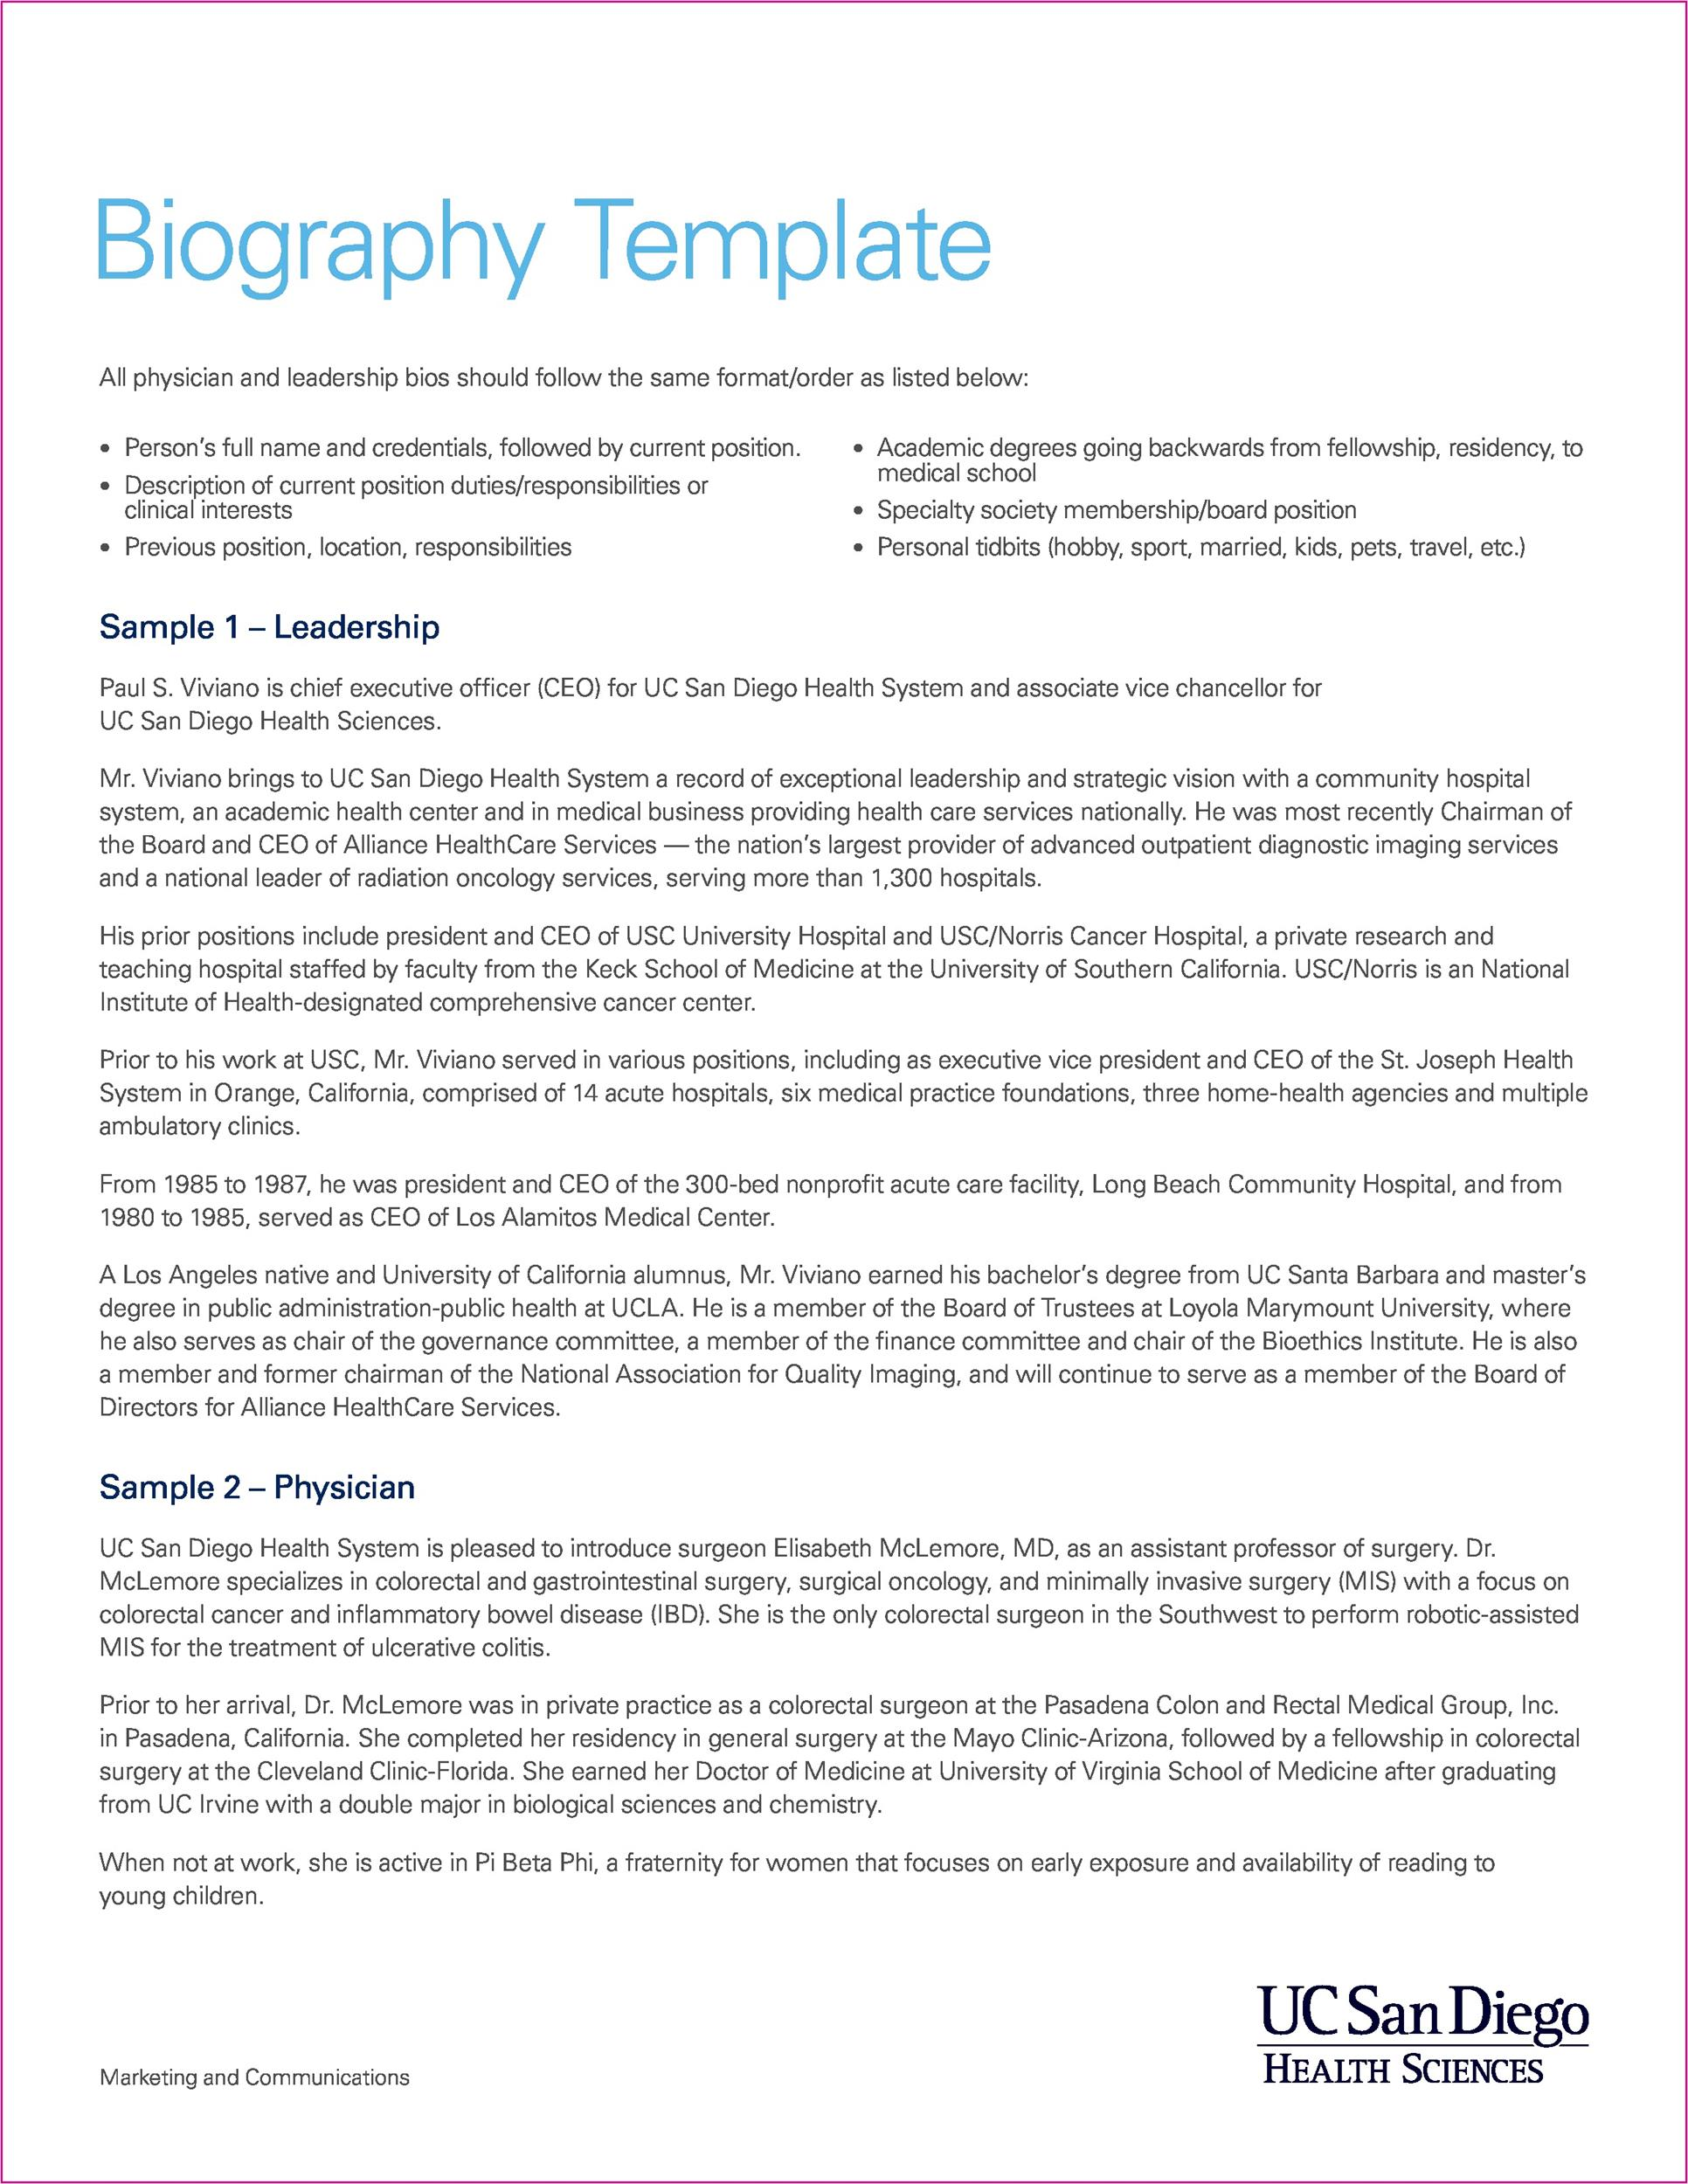 printable biography template 01 - Resume Sample Biography Template